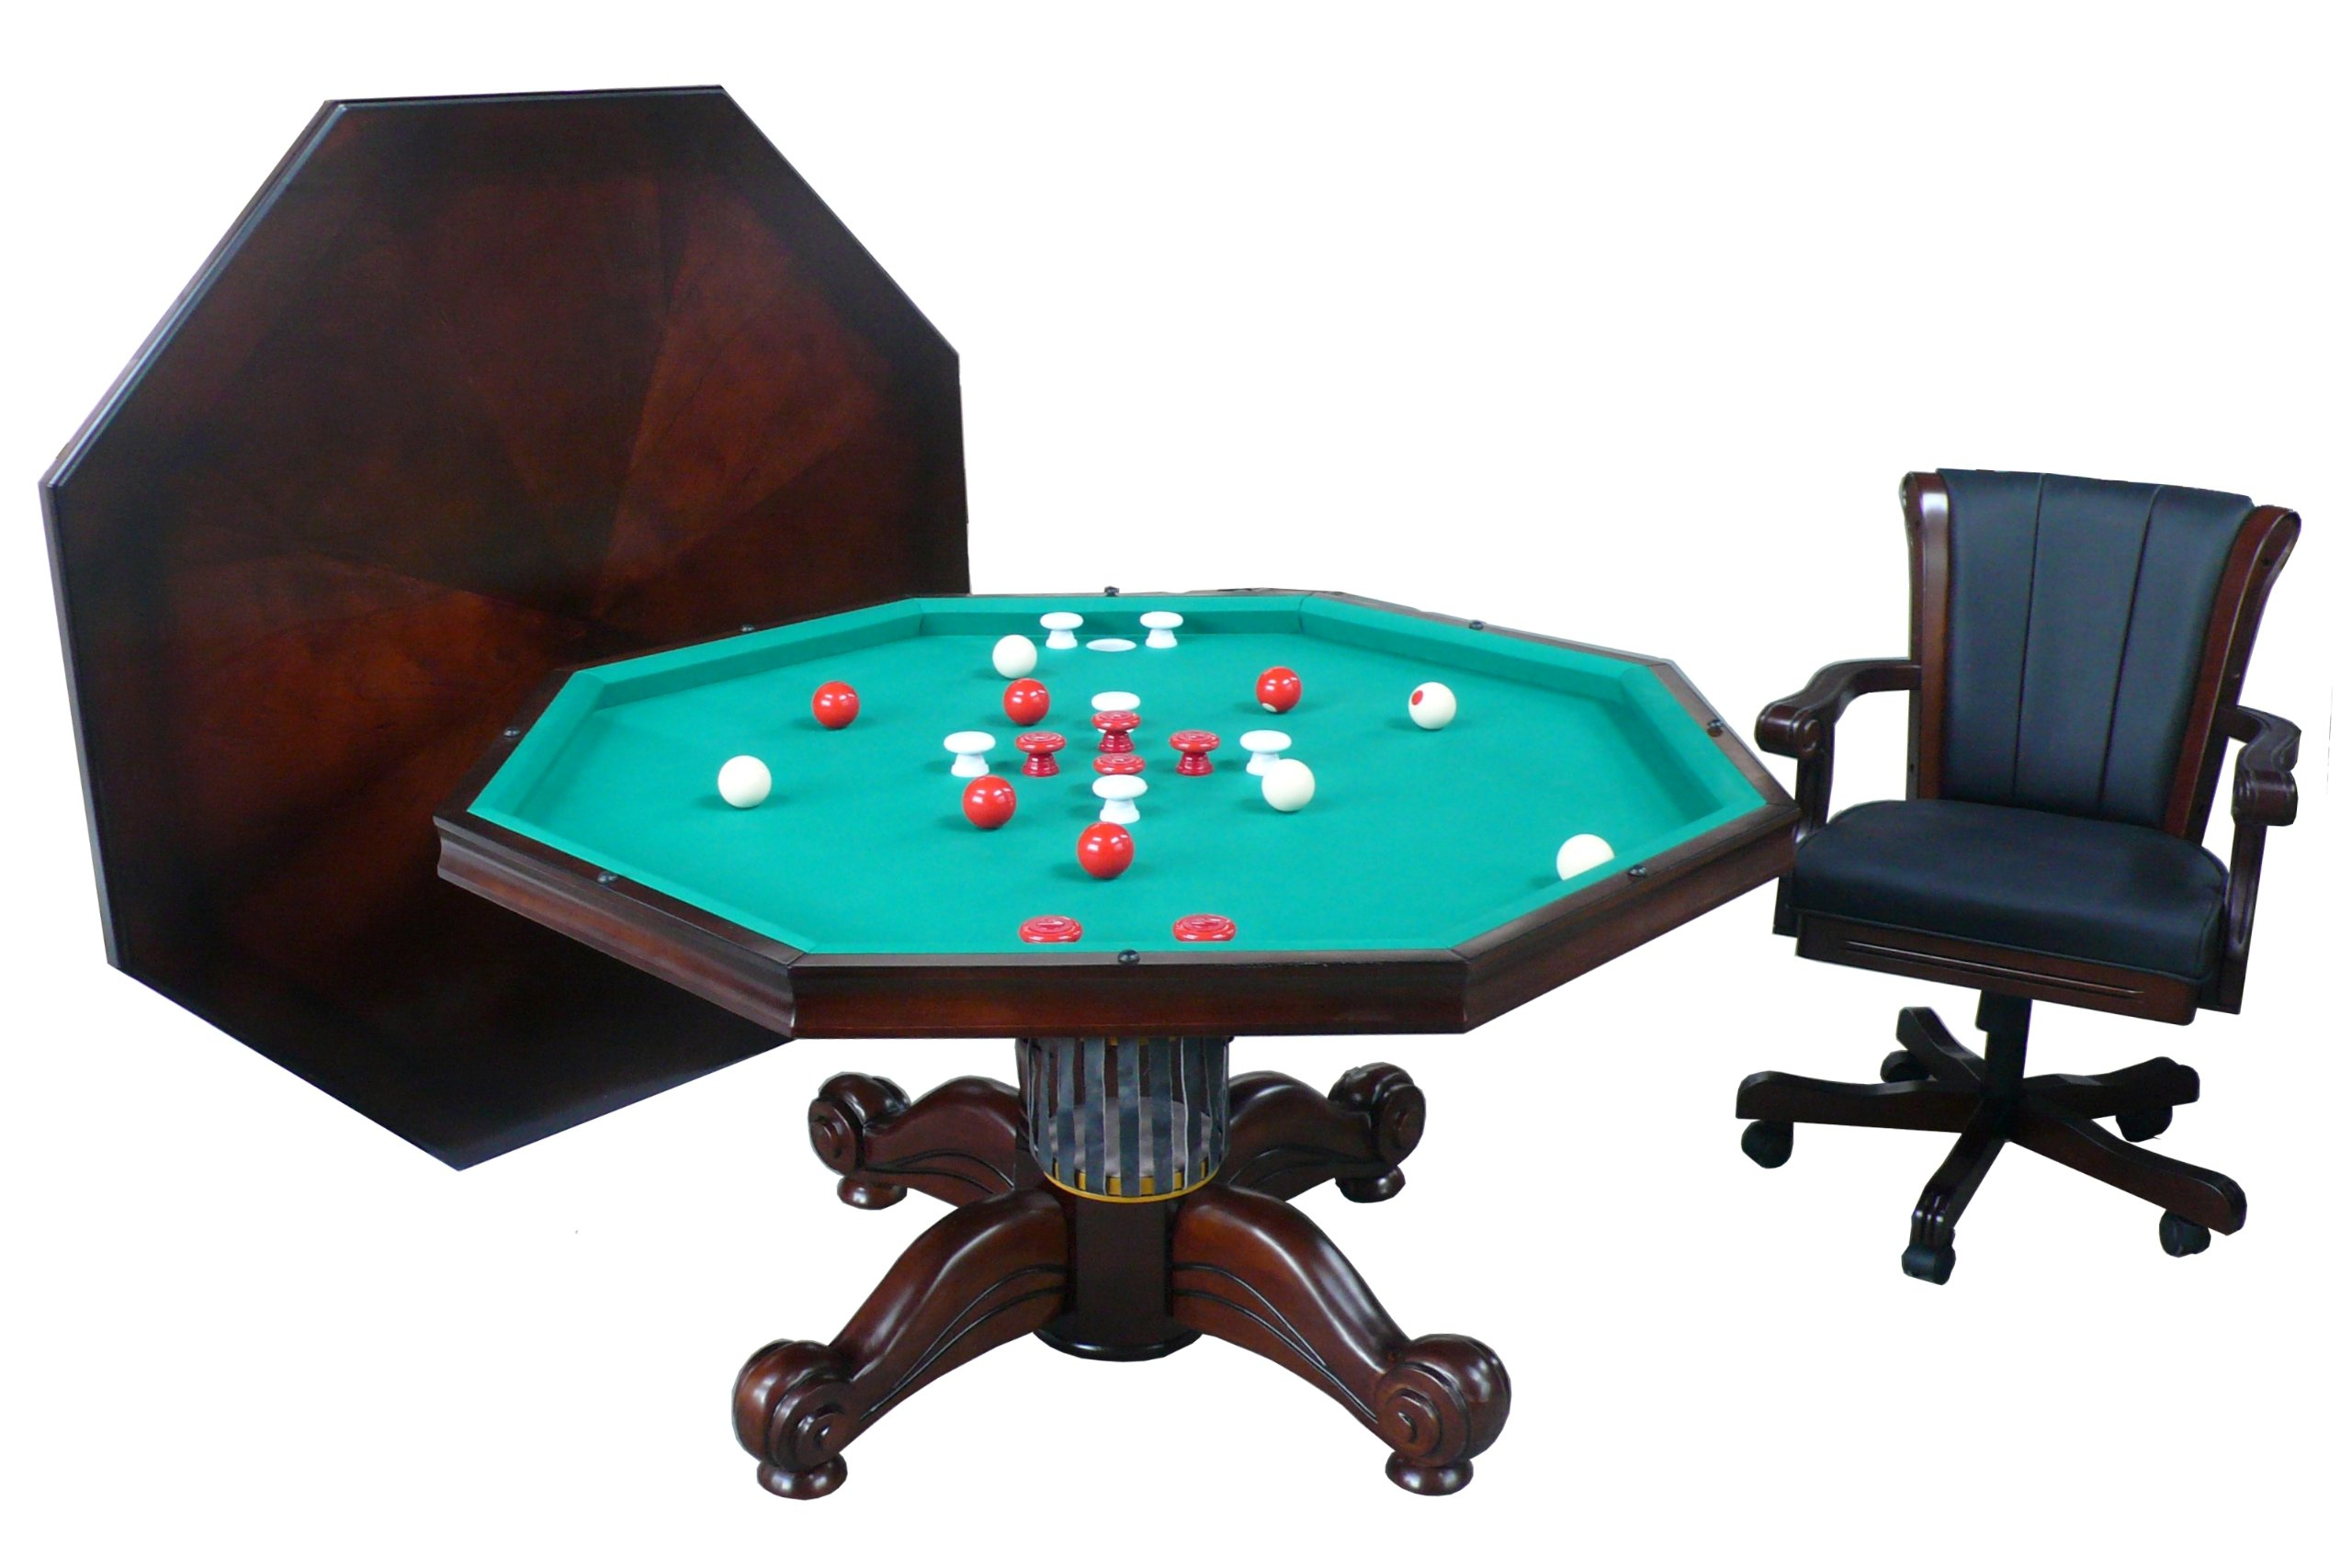 3 in 1 Game Table - Octagon 54'' Bumper Pool, Poker & Dining with 4 Chairs in Dark Walnut By Berner Billiards